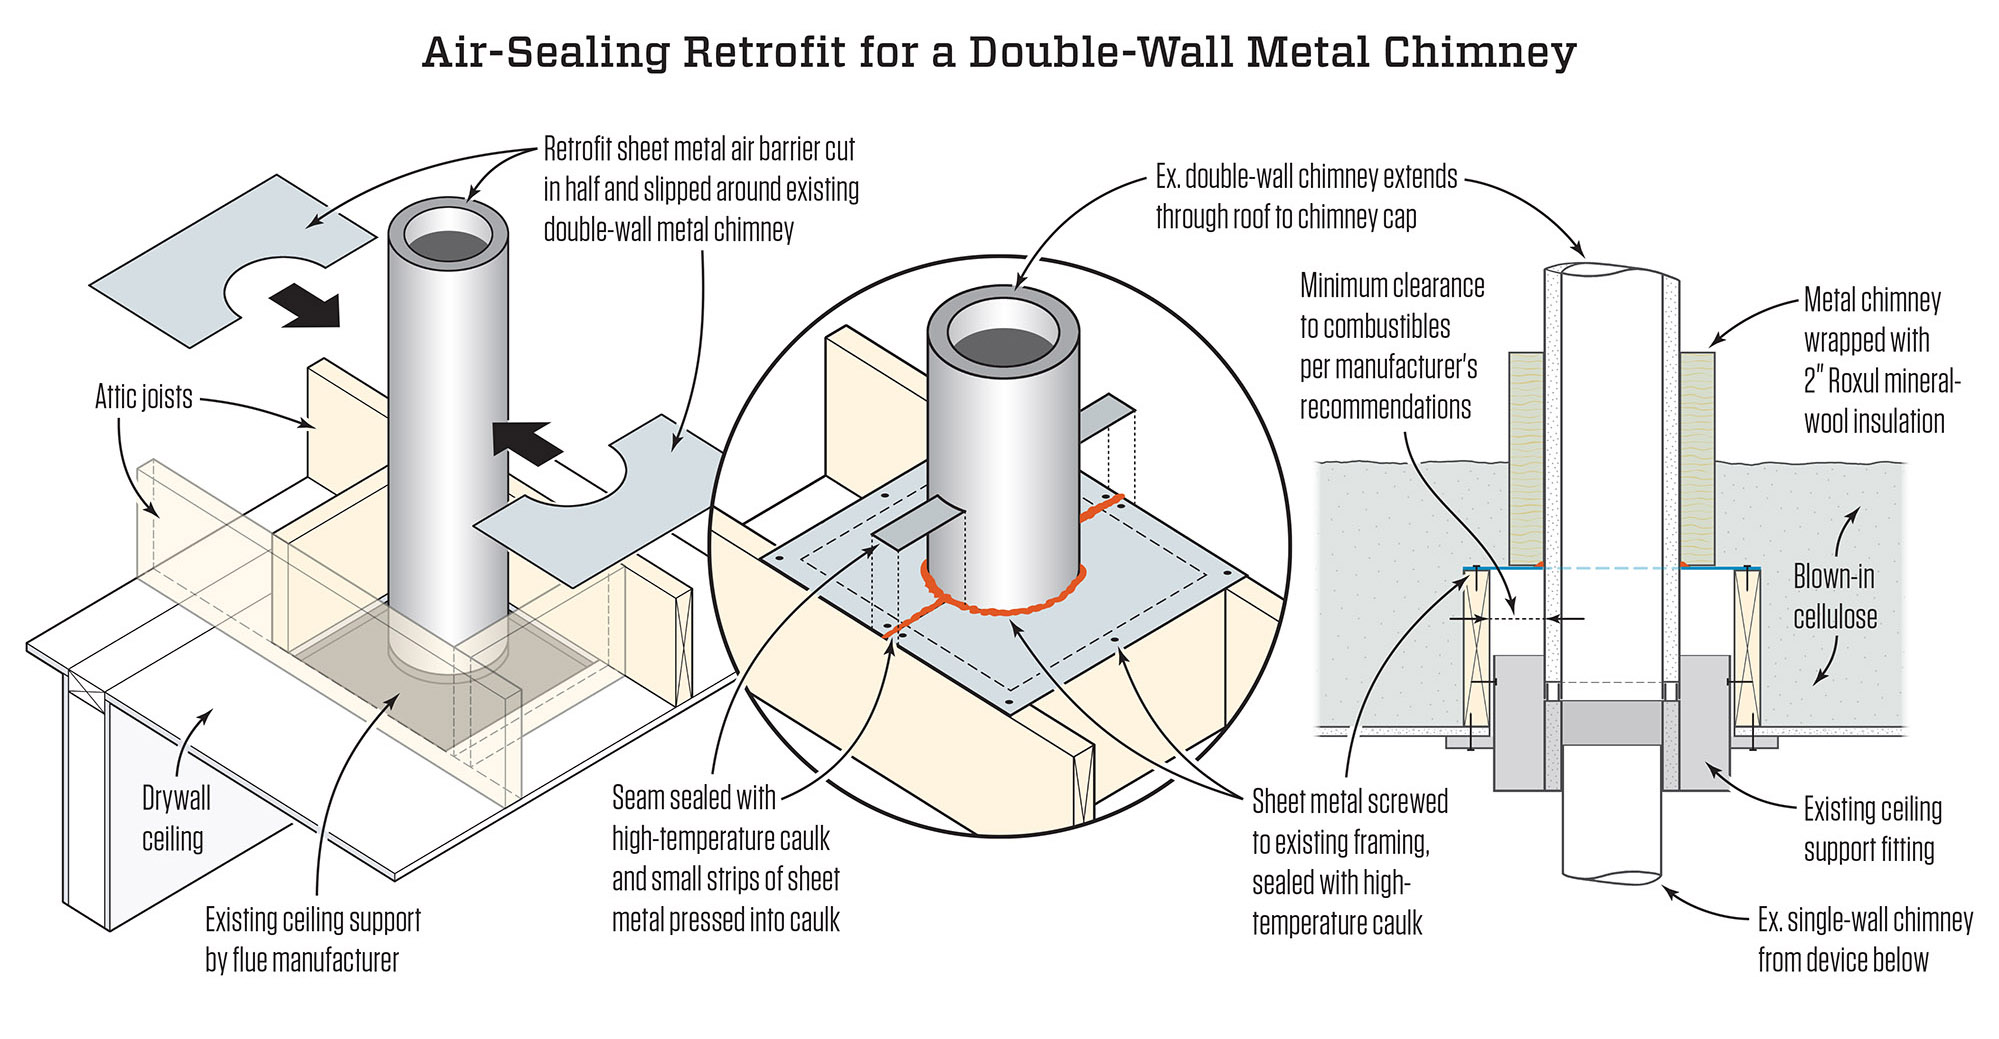 Fireproof Insulation for Fireplace Fresh Weatherizing A Double Wall Metal Chimney